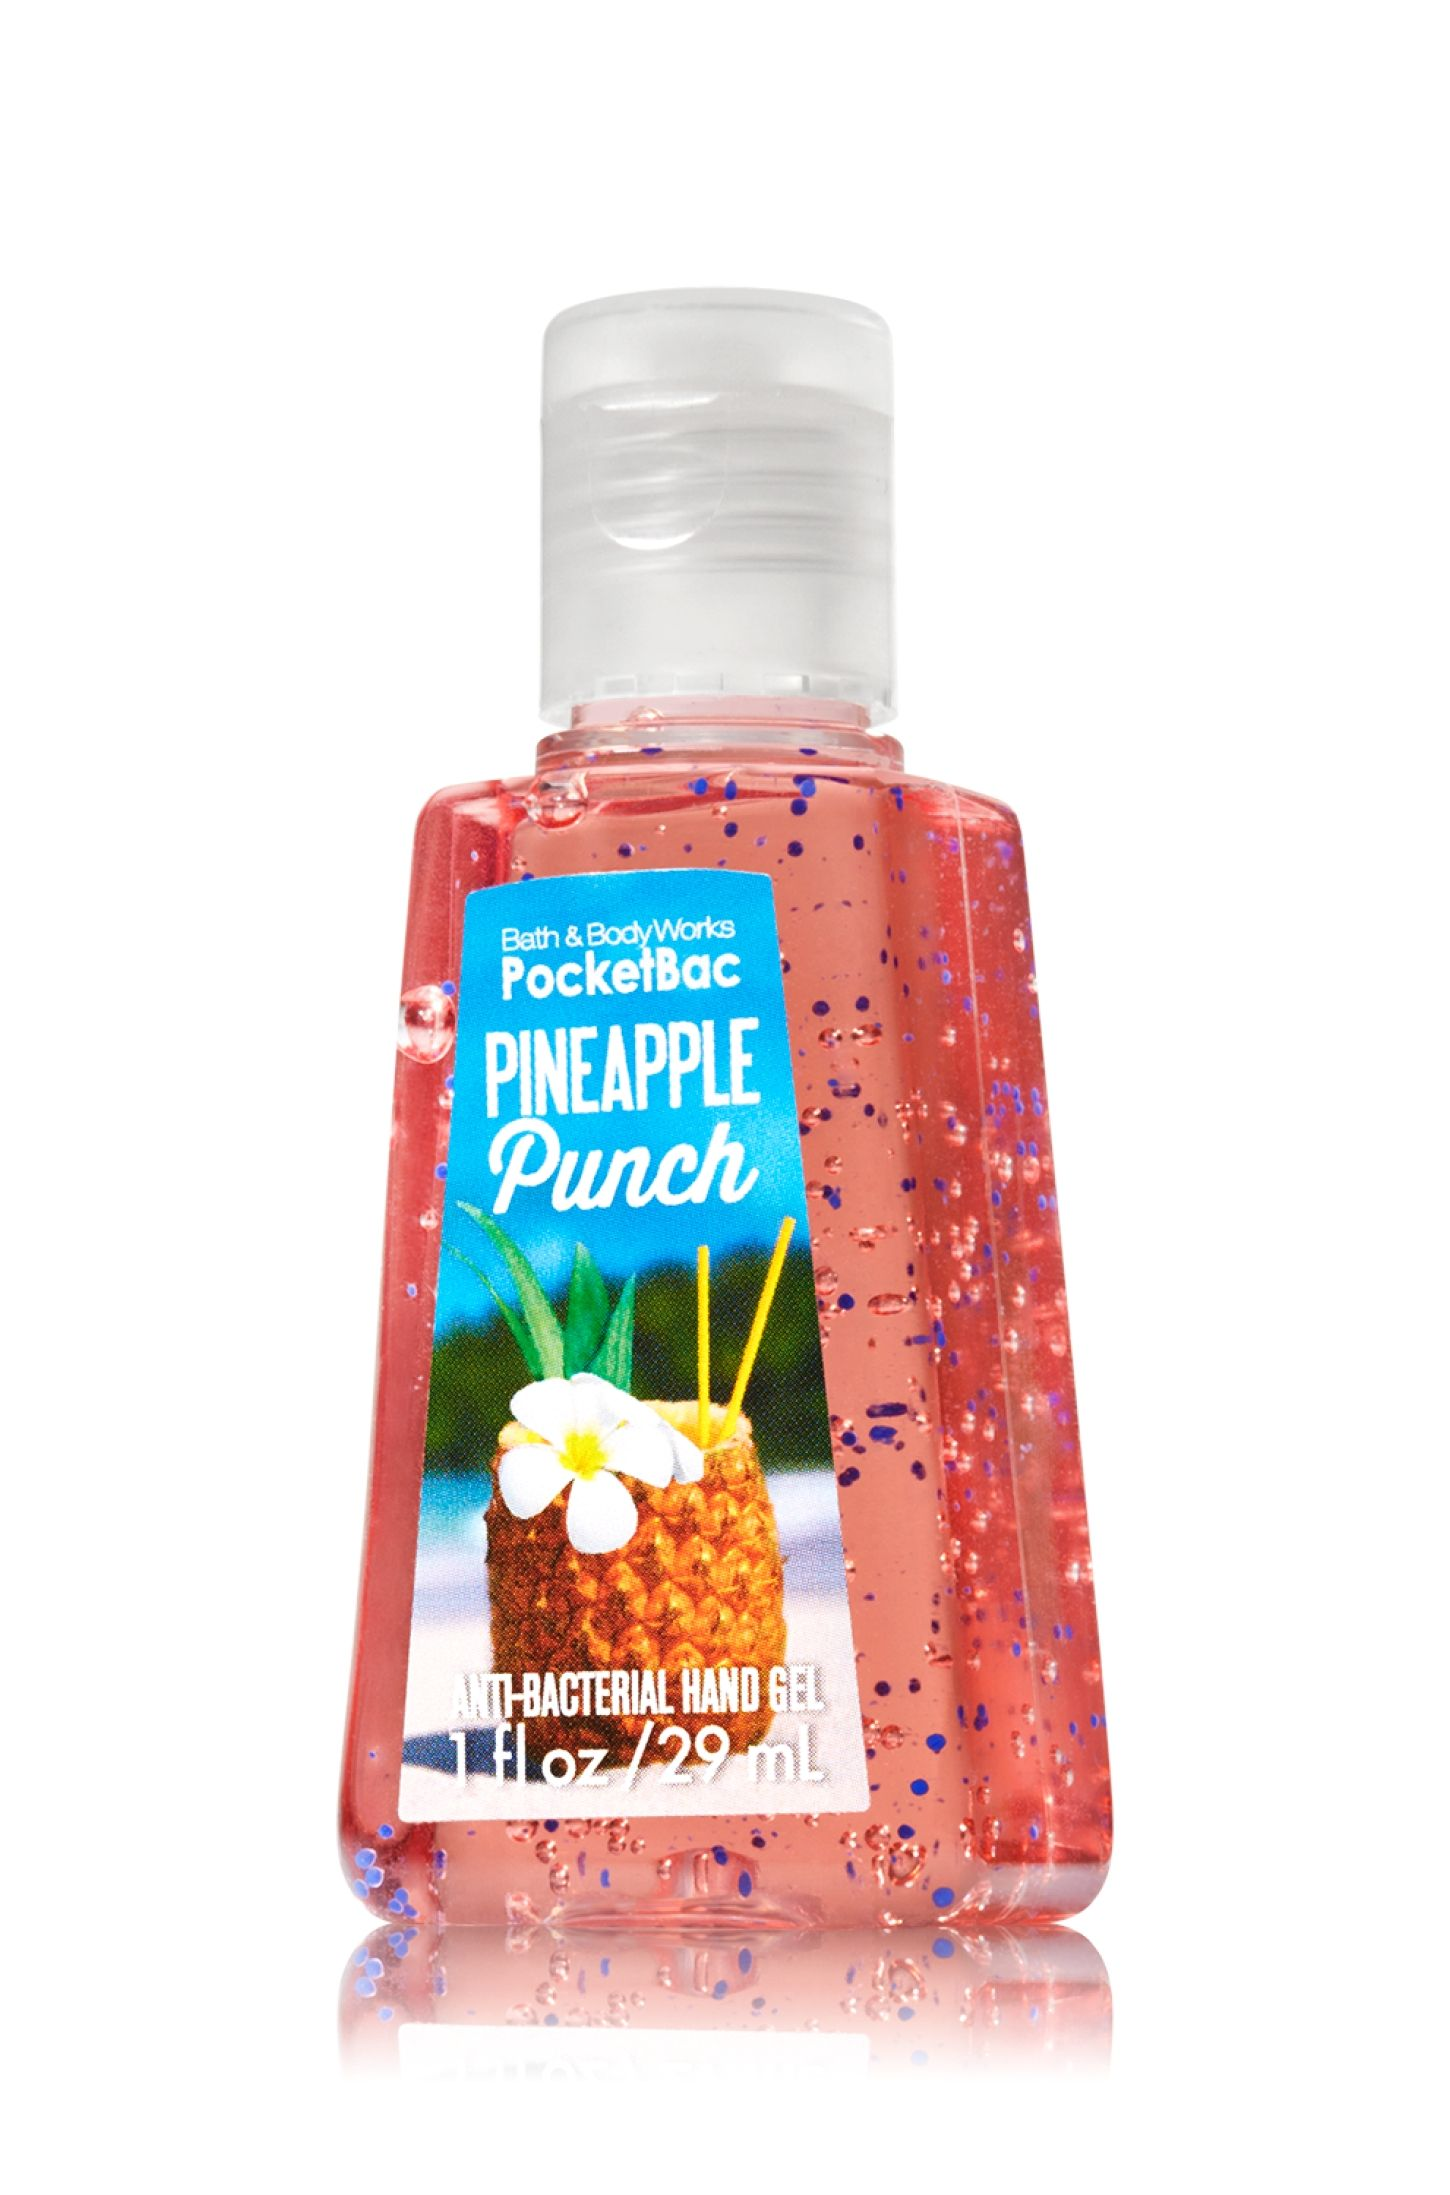 Pineapple Punch Pocketbac Sanitizing Hand Gel Soap Sanitizer